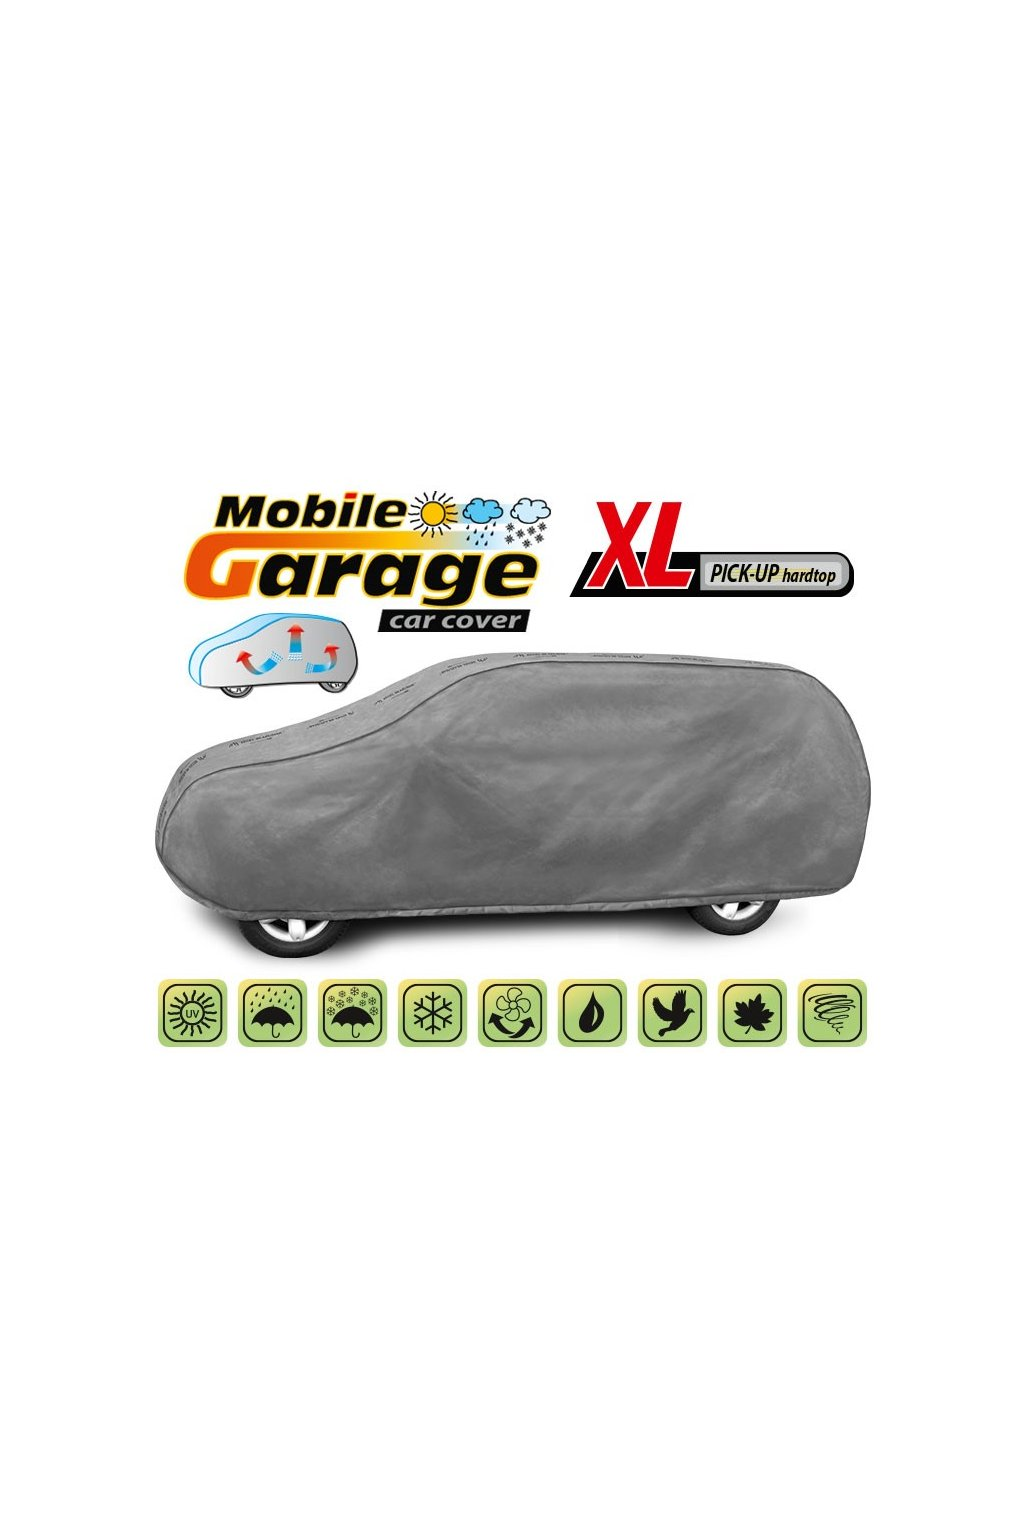 mobile garage XL pickup hardtop 5 4128 248 3020